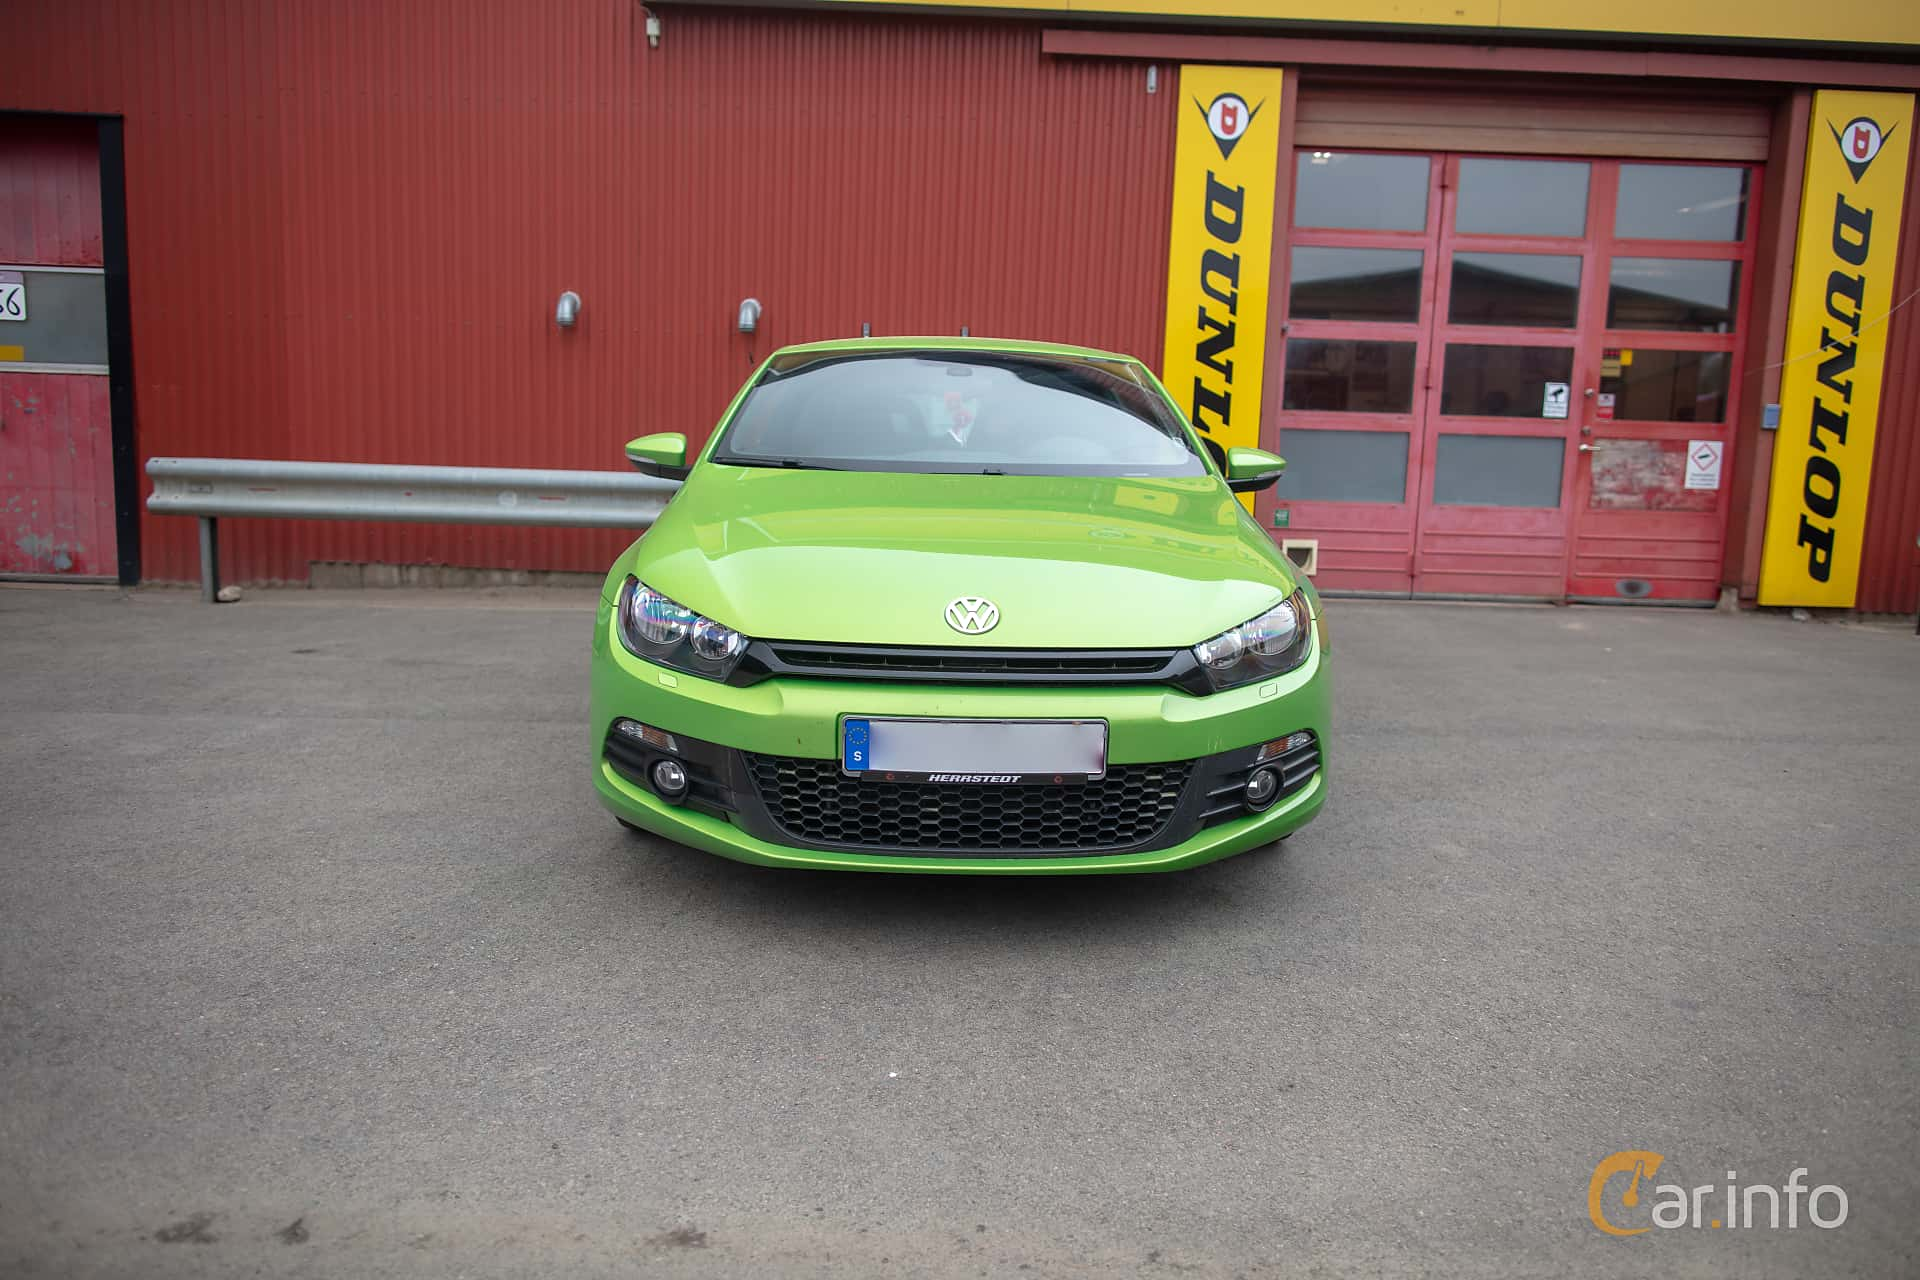 Front  of Volkswagen Scirocco 1.4 TSI Manual, 160ps, 2010 at Lucys motorfest 2019